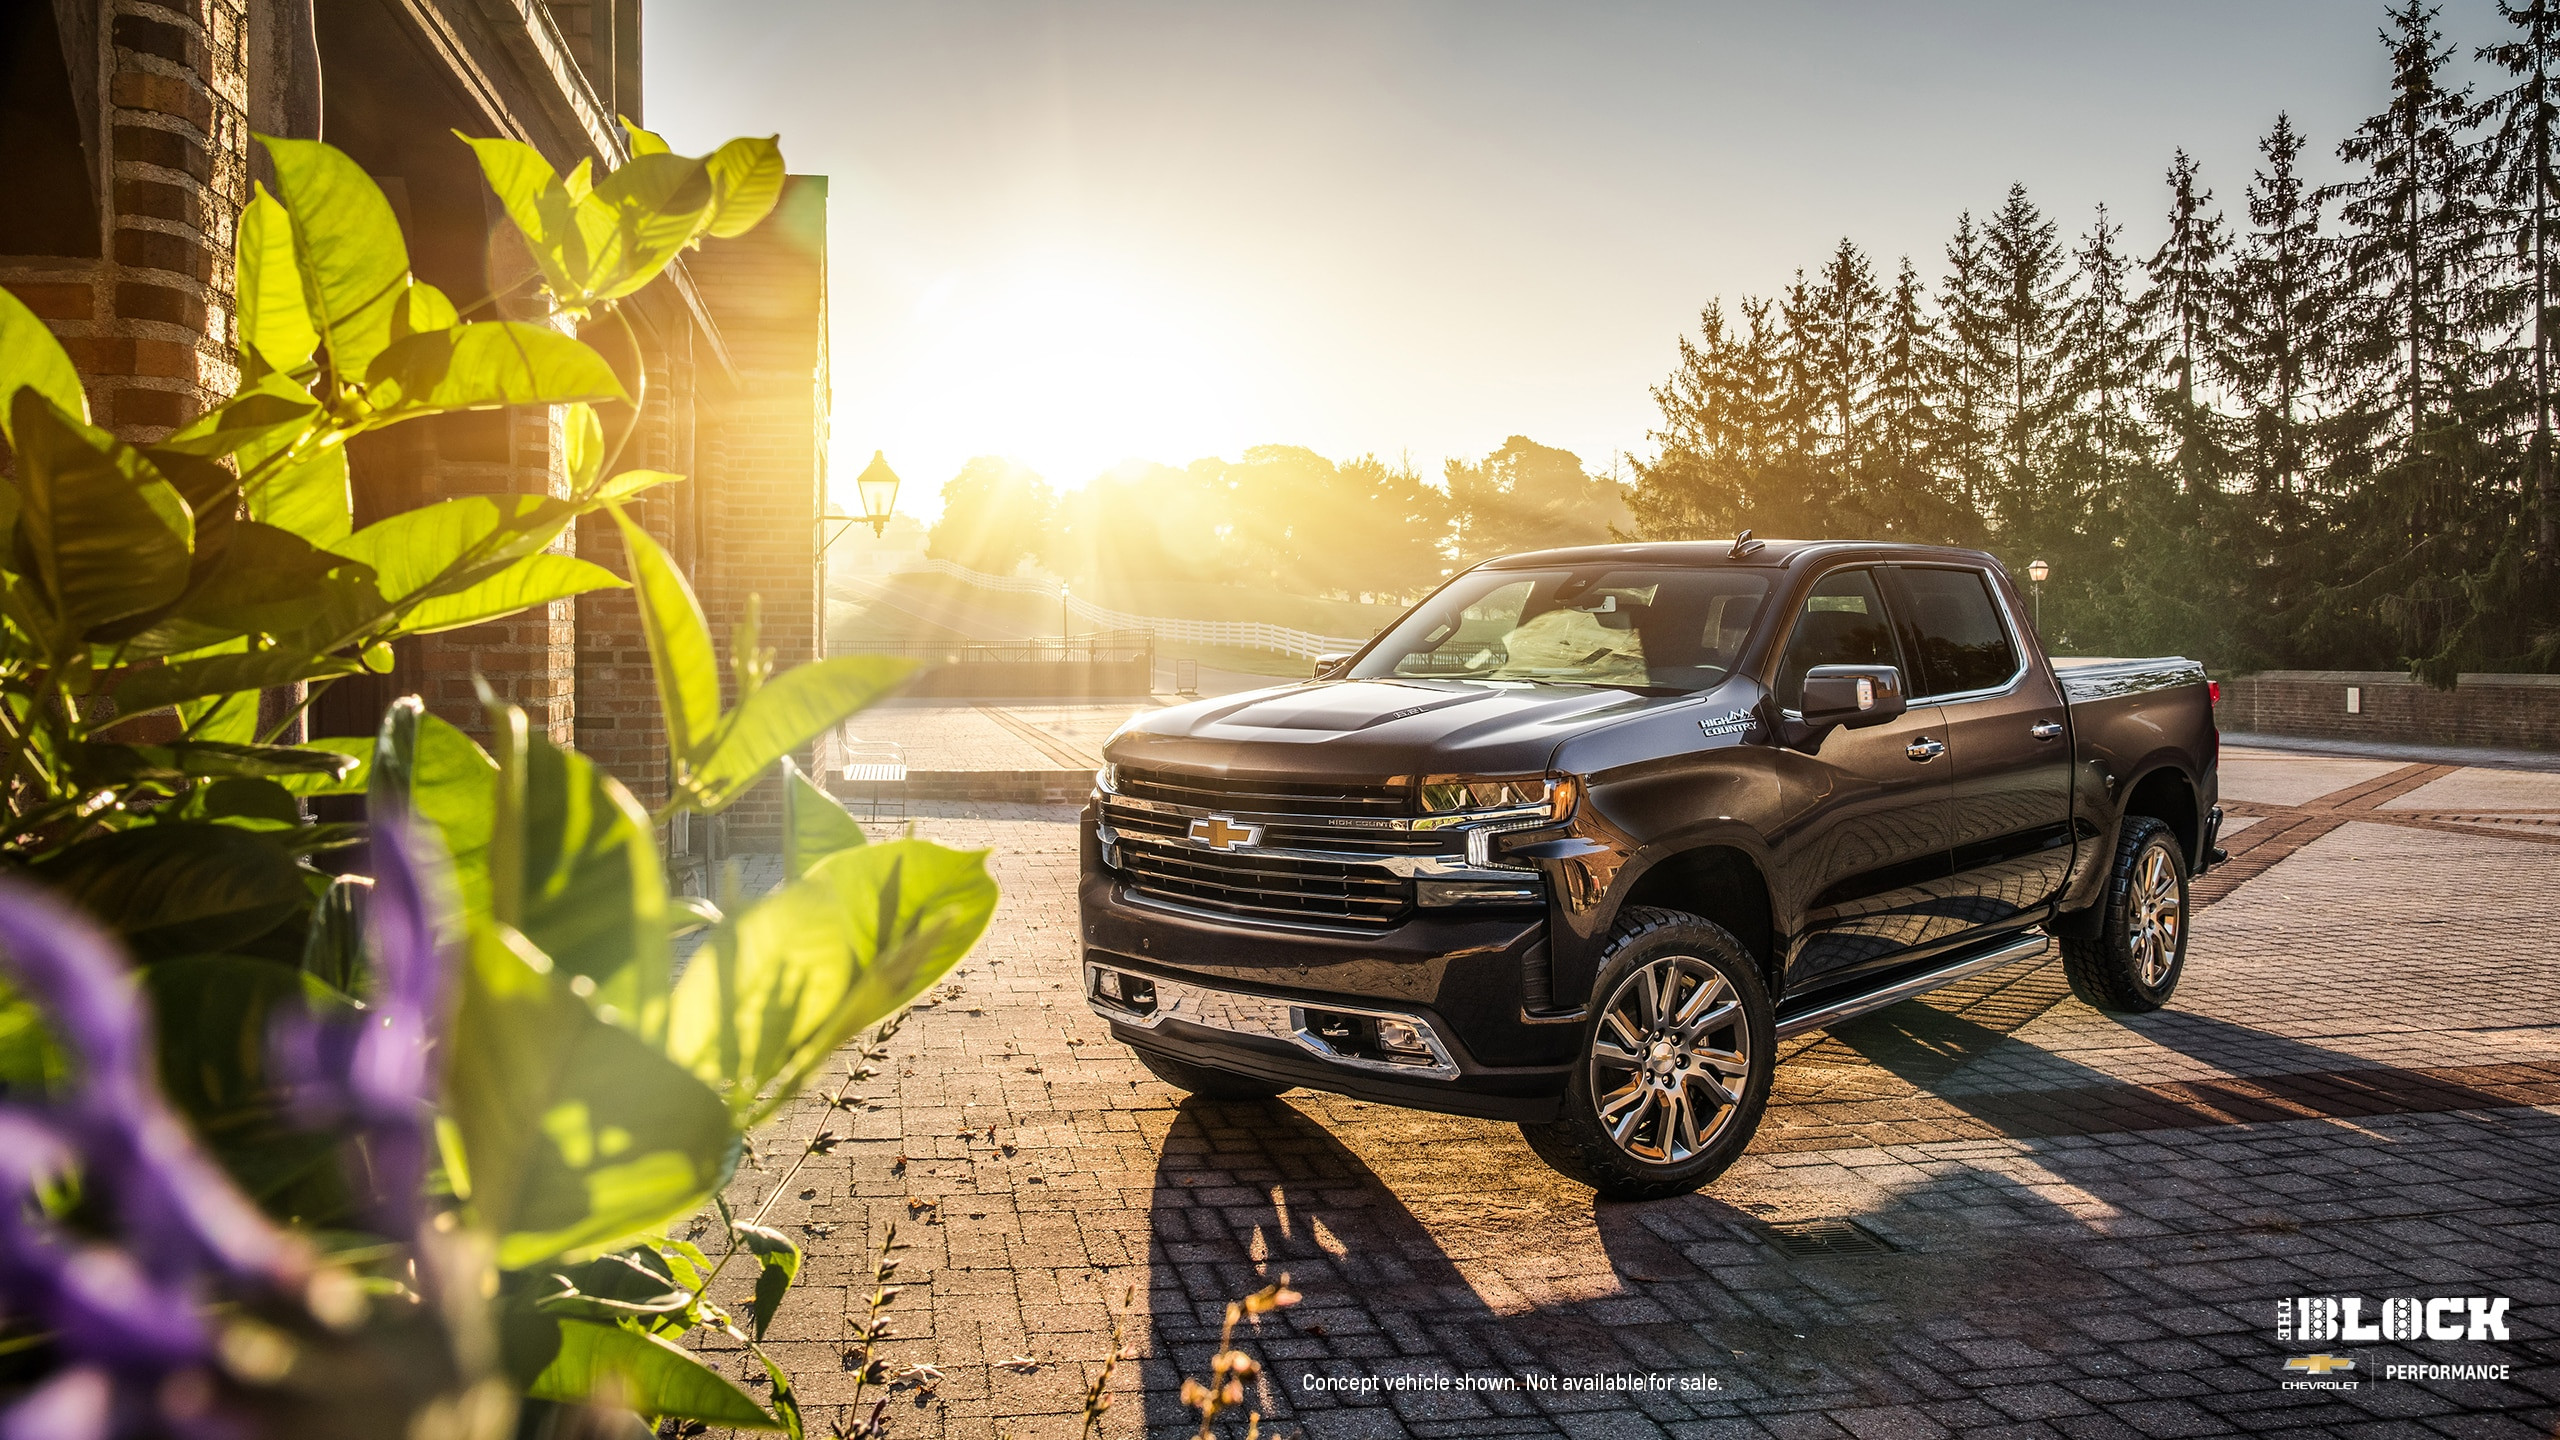 Wallpaper Wednesday: 2019 Silverado High Country Concept